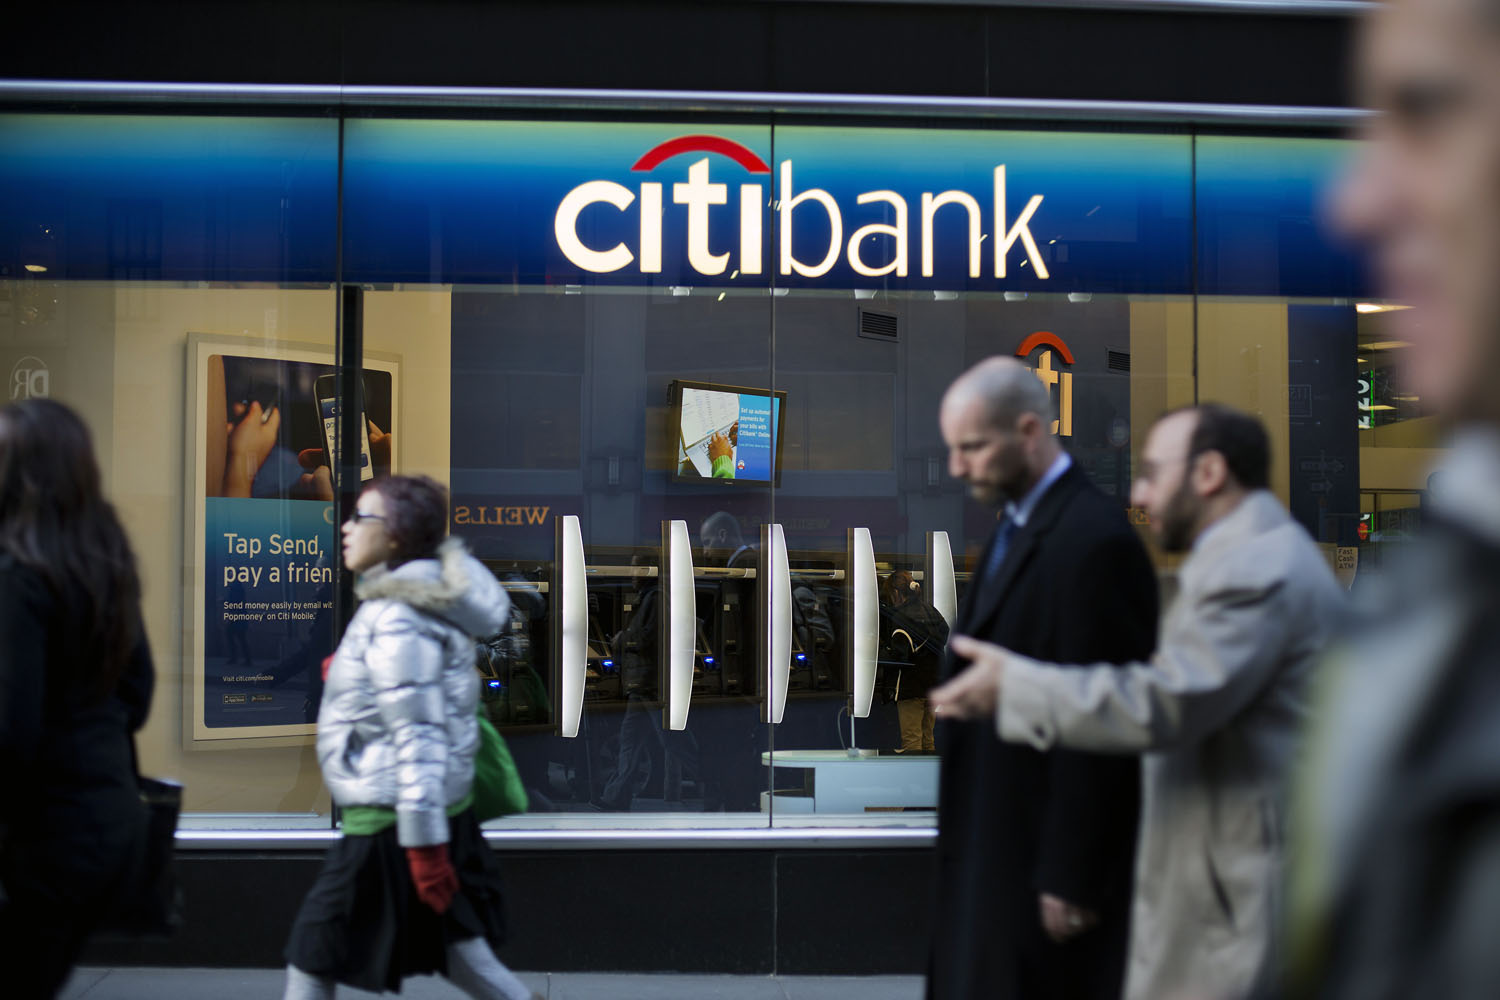 Pedestrians walk past a Citigroup Inc. Citibank branch in New York, U.S., on Tuesday, March 5, 2013. The six largest U.S. banks may return almost $41 billion to investors in the next 12 months, the most since 2007, as regulators conclude firms have amassed enough capital to withstand another economic shock. Photographer: Victor J. Blue/Bloomberg via Getty Images